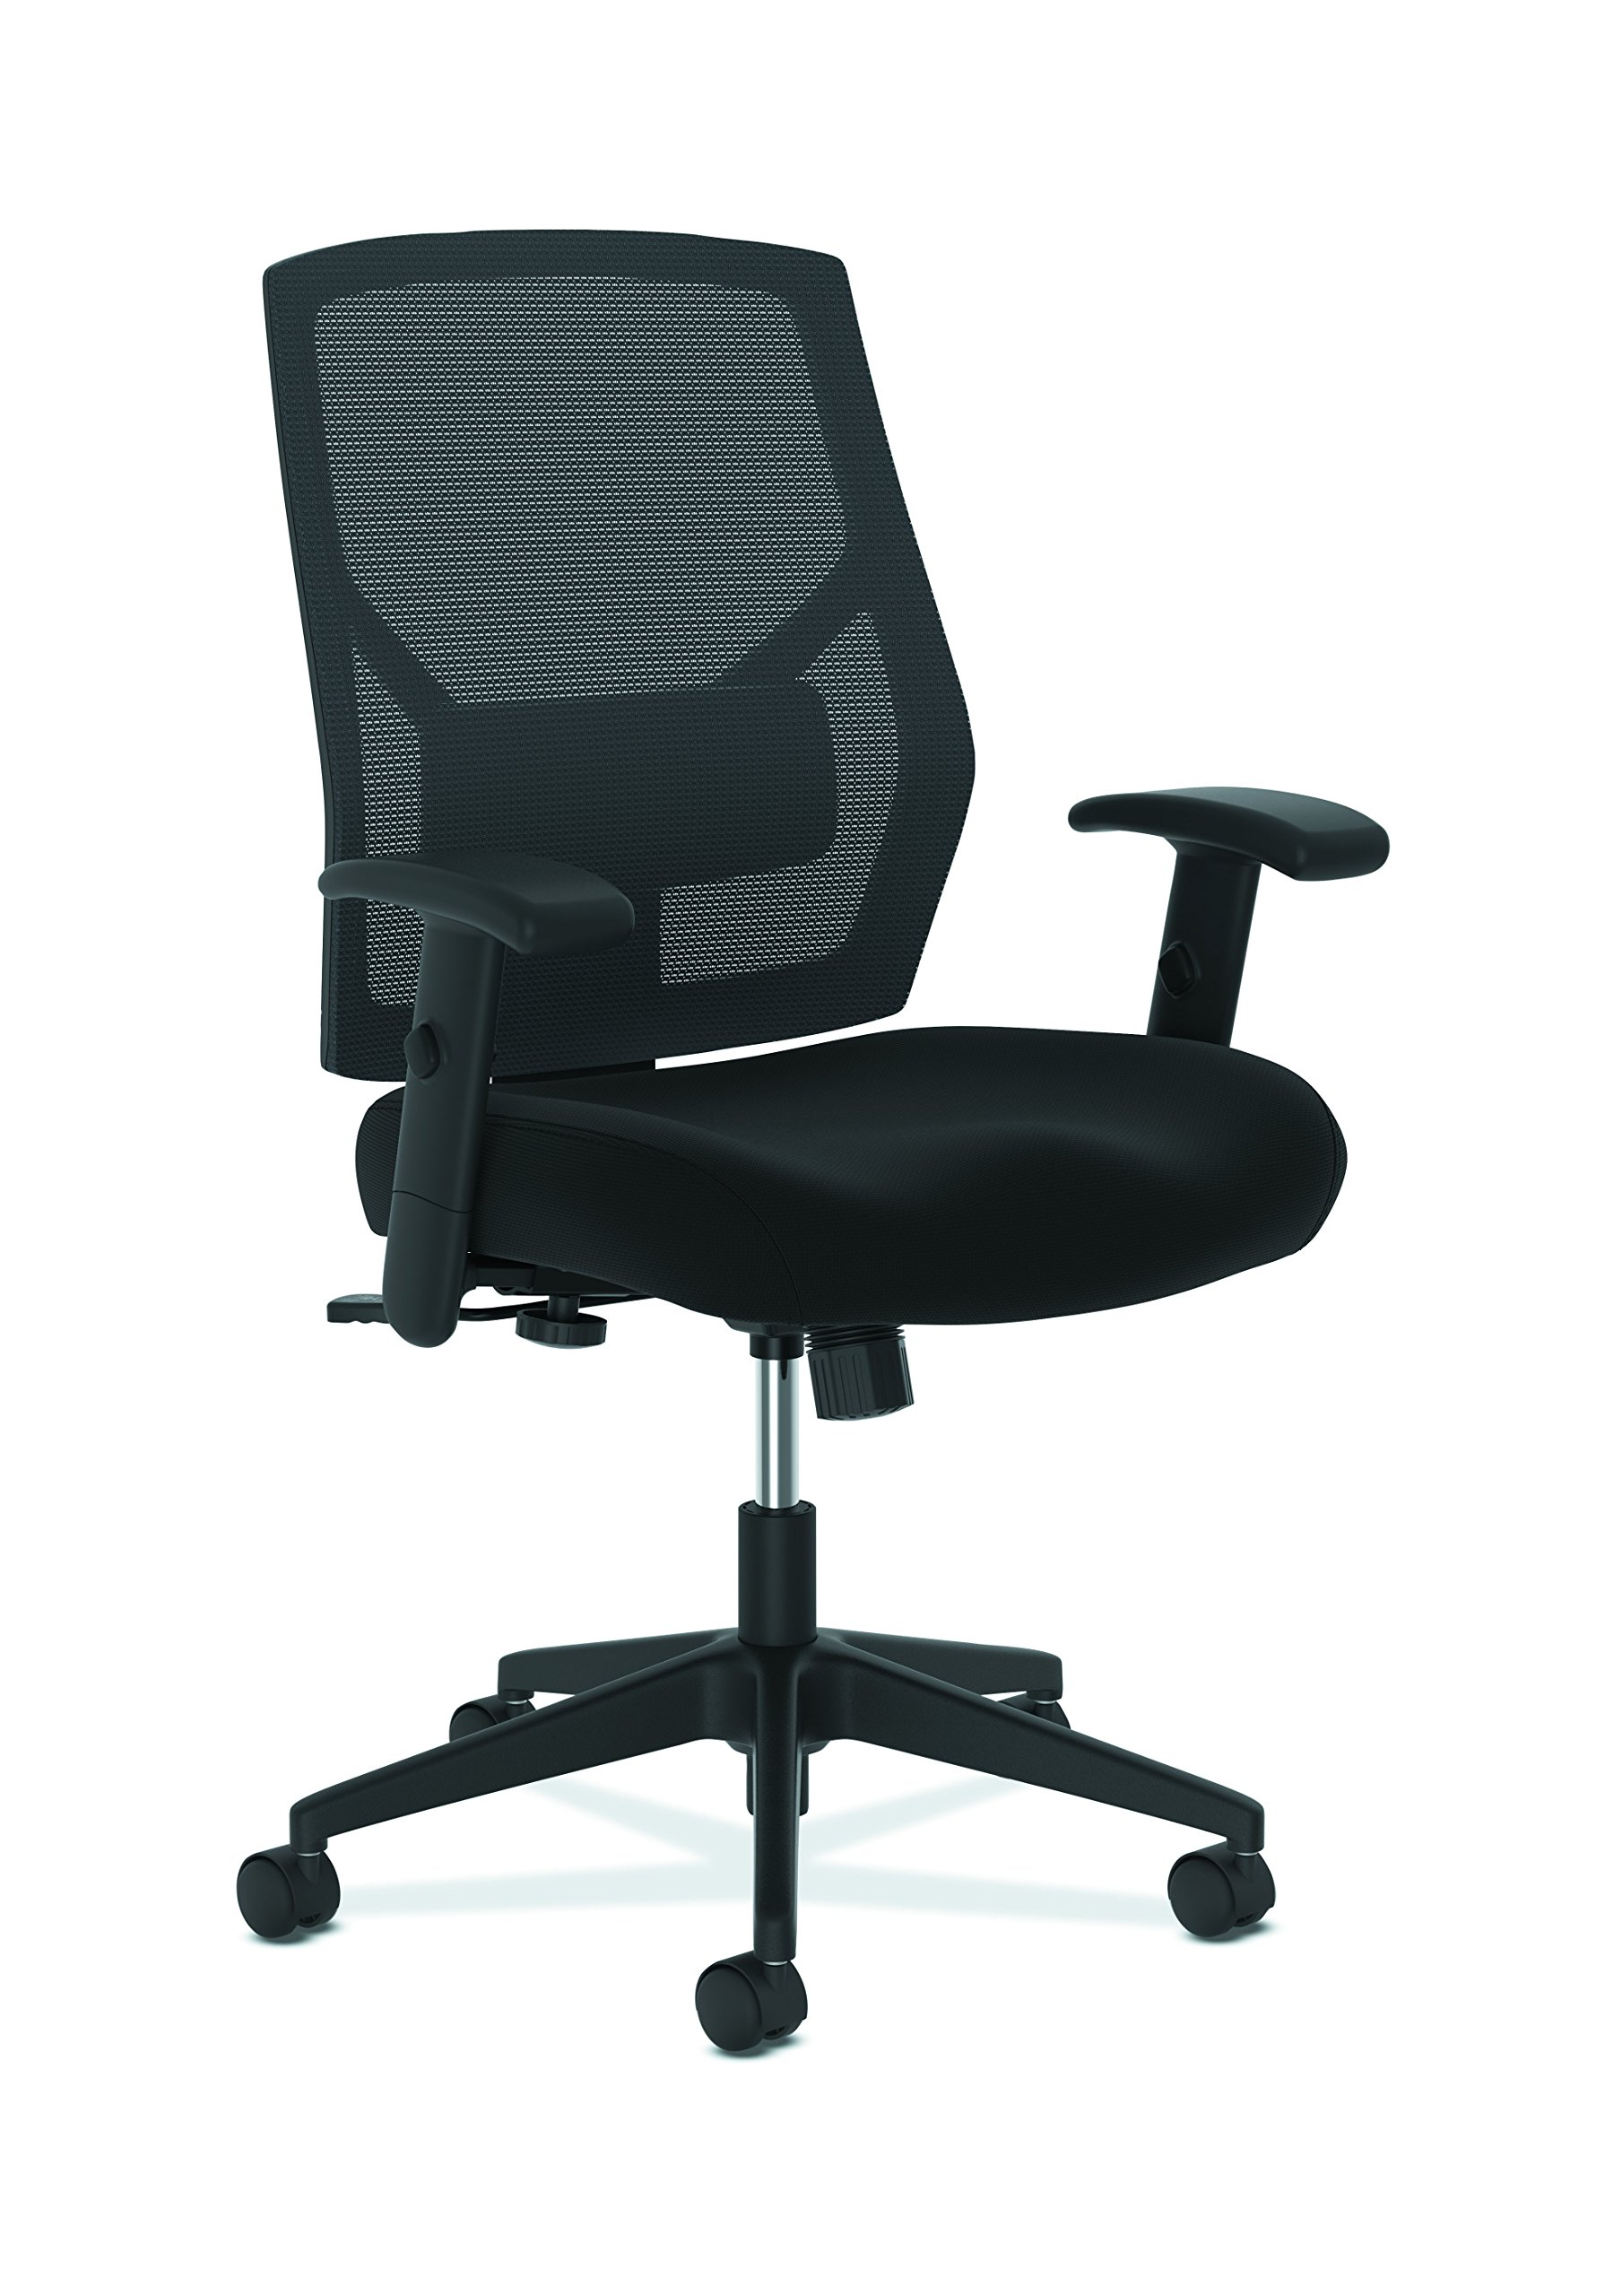 The HON Company BSXVL581ES10T HON Crio High Task Fabric Mesh Back Computer Chair for Office Desk, Black (HVL581), Swivel/Tilt by HON